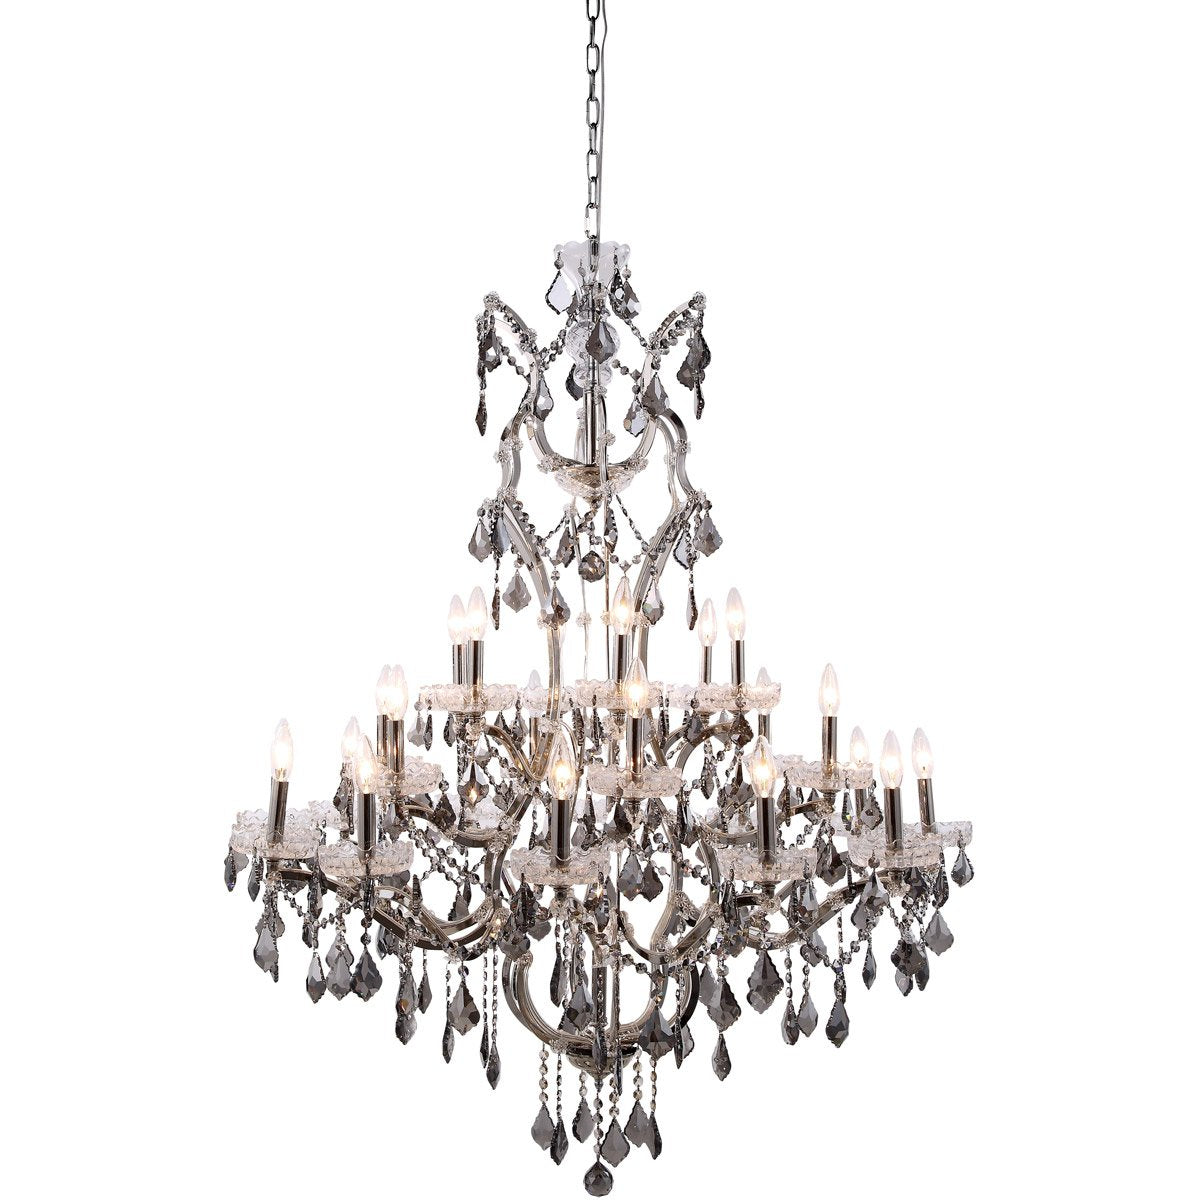 Elena 41 Crystal Chandelier With 25 Lights - Polished Nickel Finish And Grey Crystal Chandelier